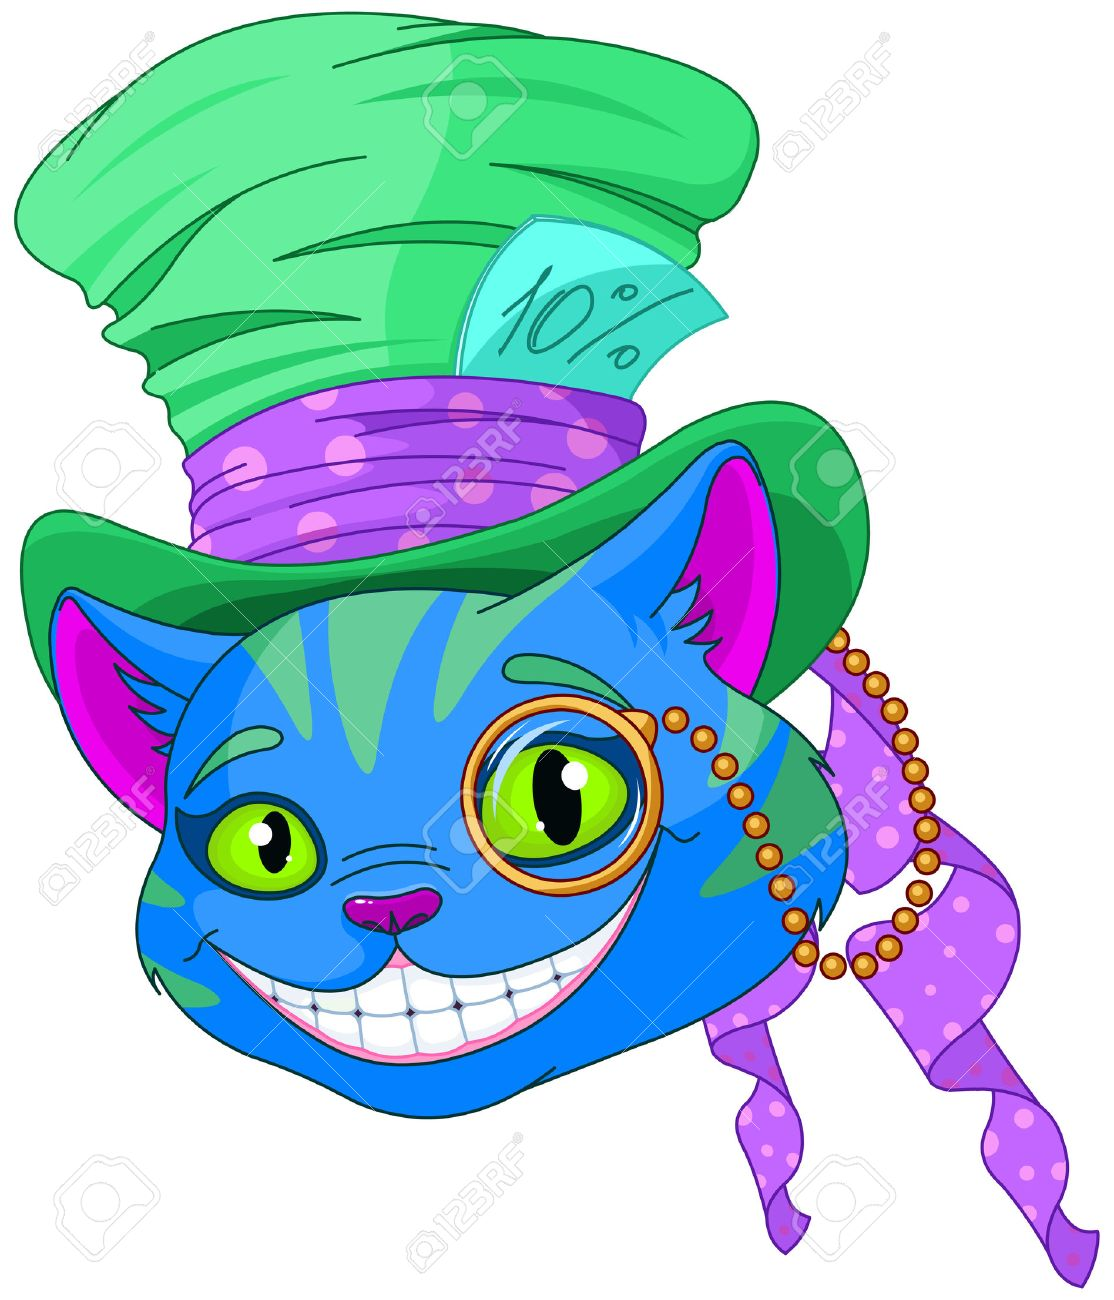 Cheshire Cat In Top Hat And Monocle Royalty Free Cliparts, Vectors ...